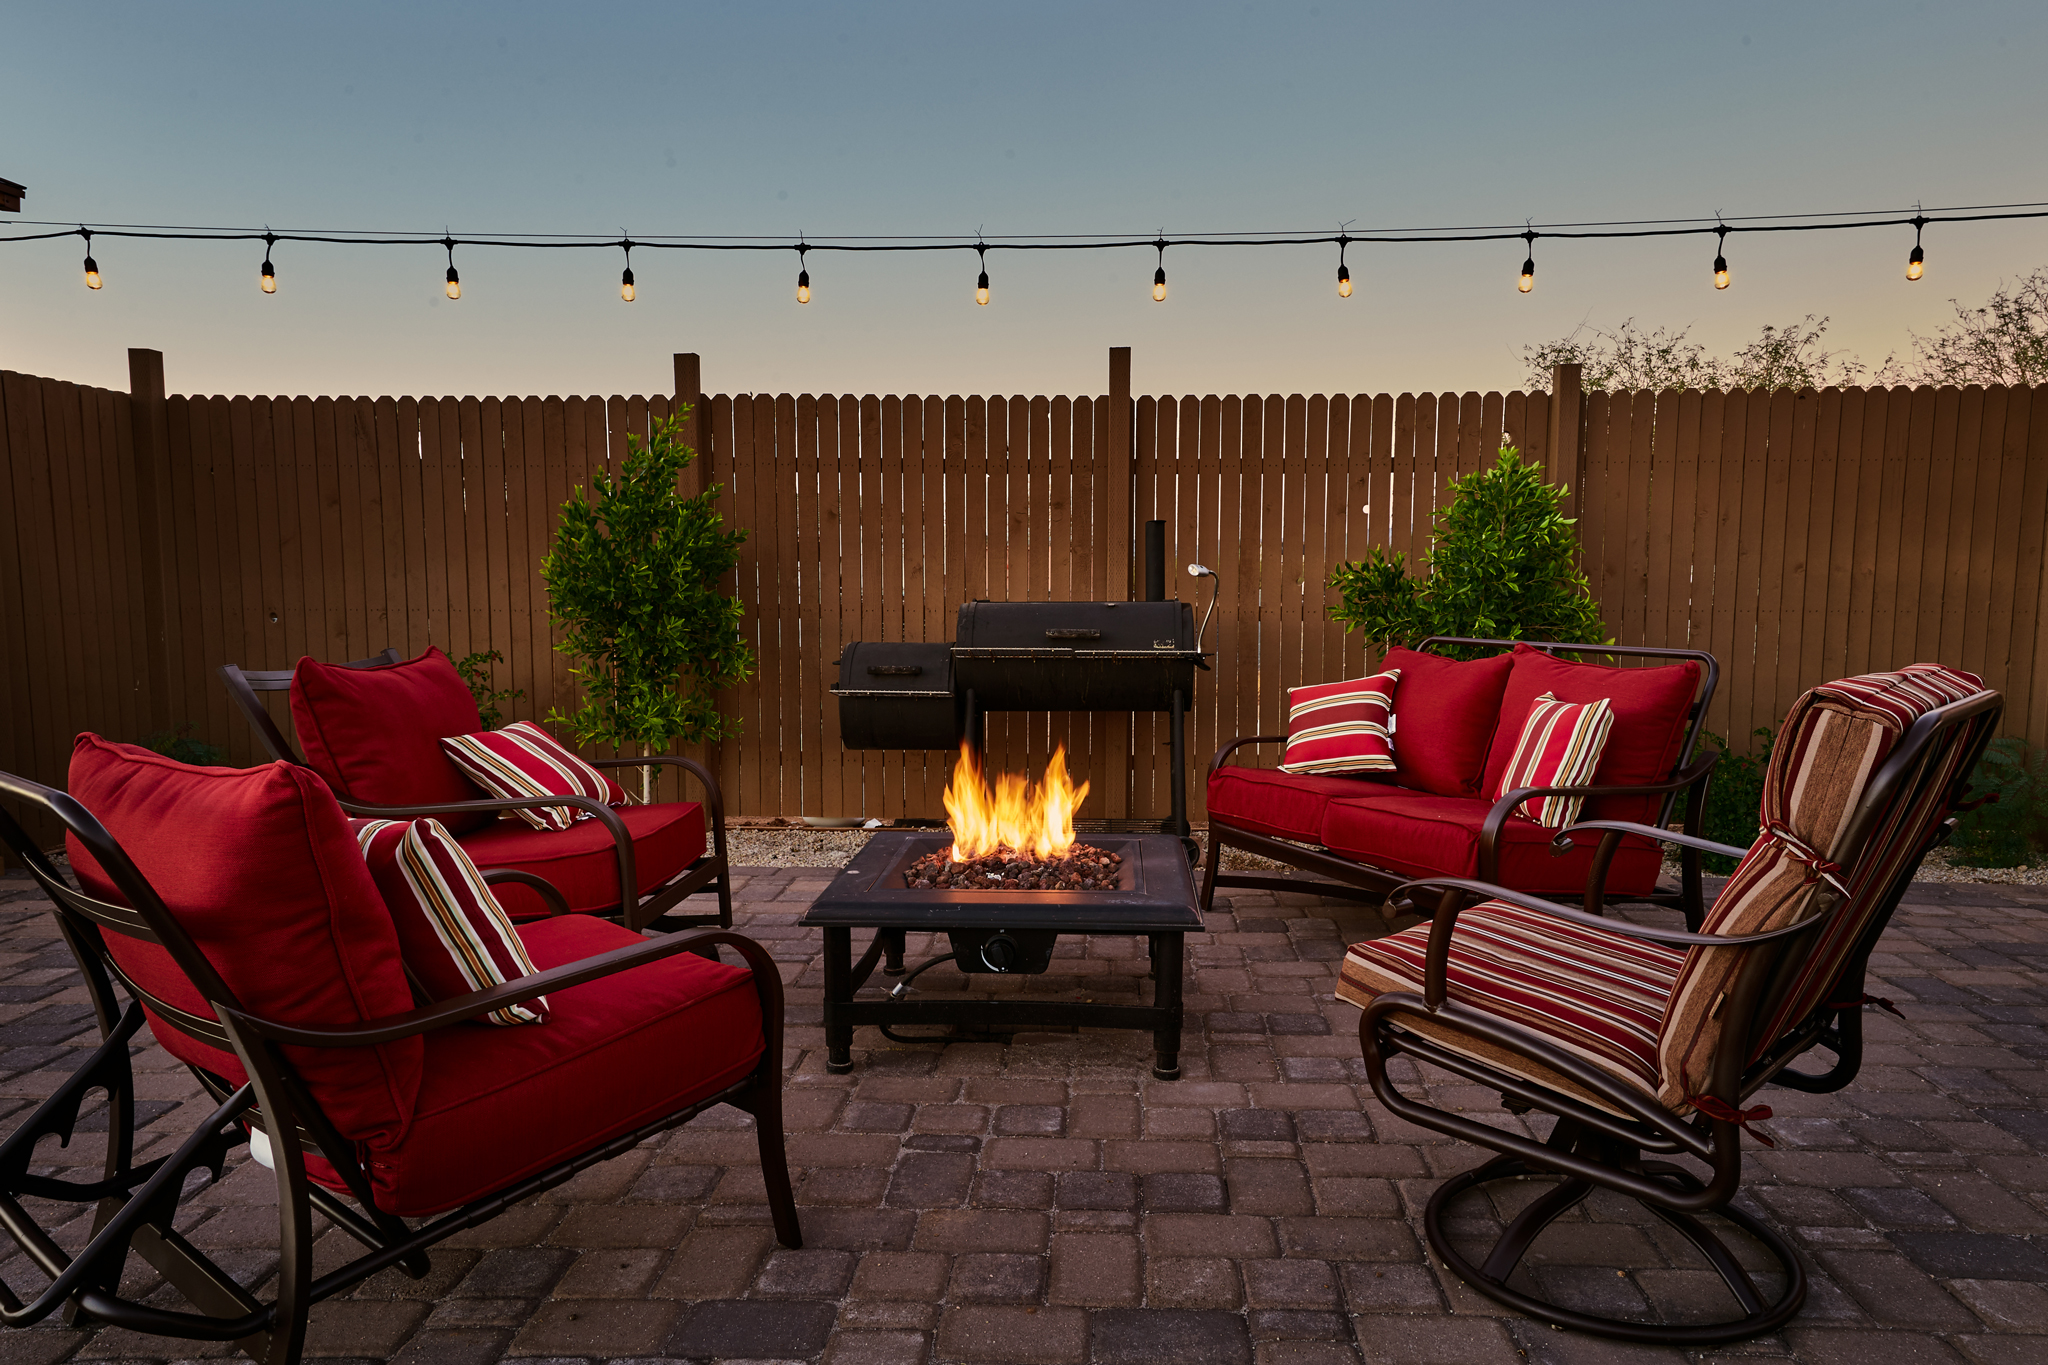 Commercial-Photographer-Brandon_Tigrett_Abellavida-firepit-1